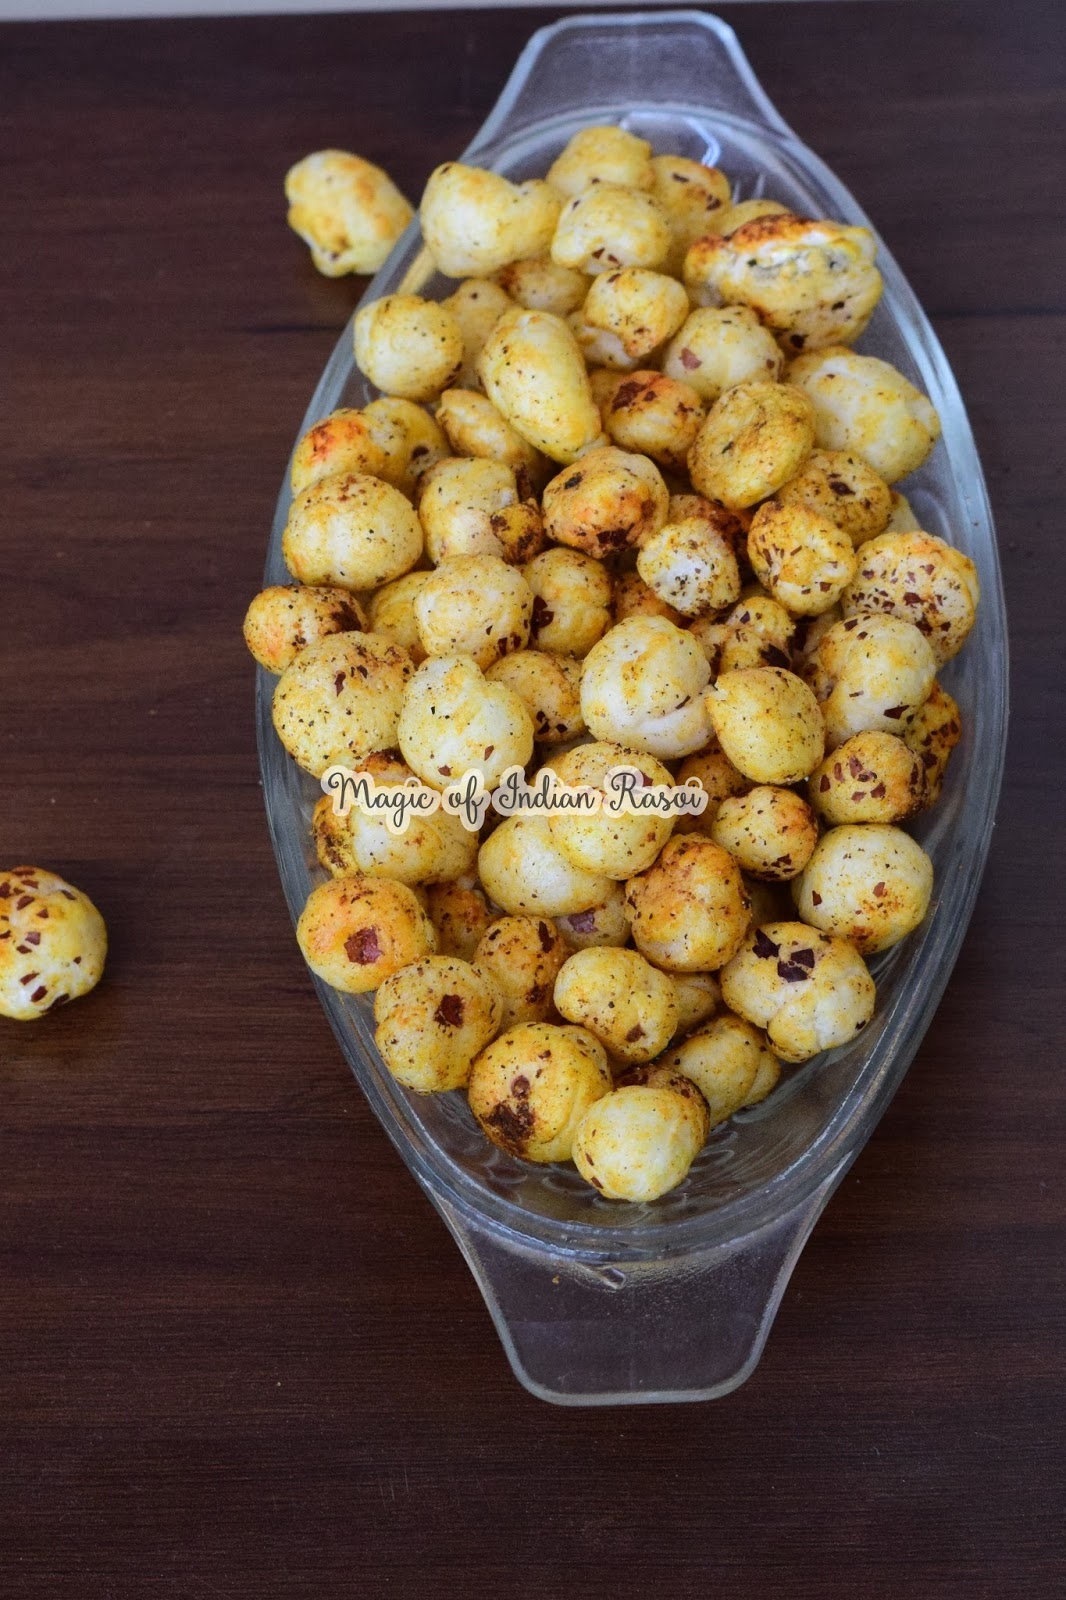 Roasted Masala Makhana Recipe - Spicy Foxnuts/Lotus Seeds Recipe - भुने हुए मसाला फूल मखाना रेसिपी - Priya R - Magic of Indian Rasoi